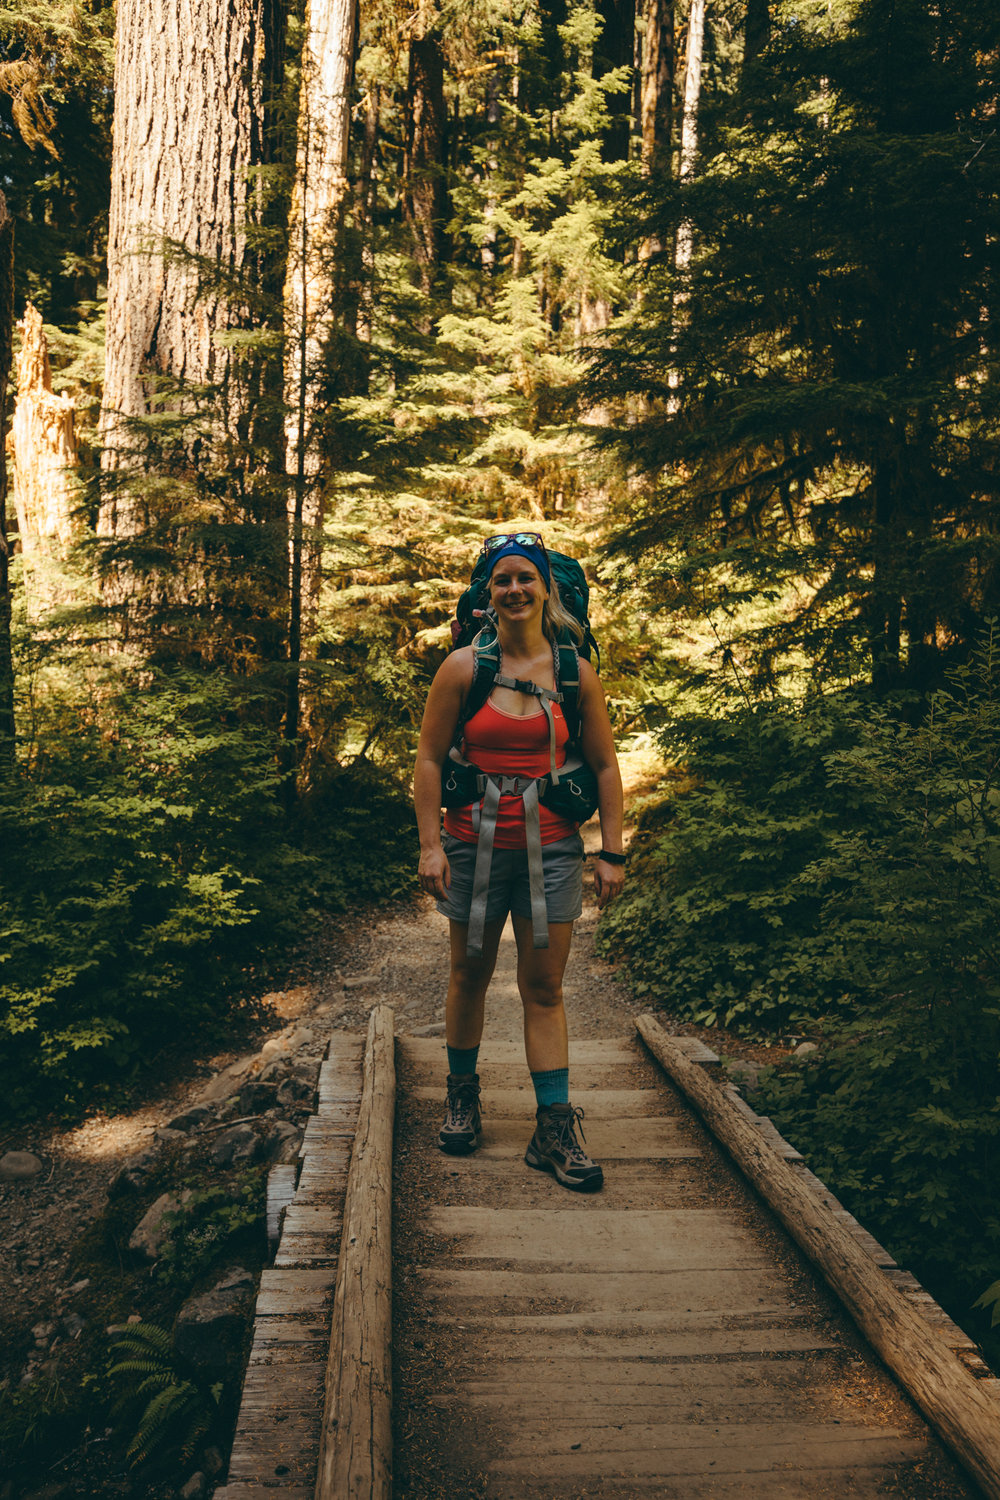 oregon-washington-pnw-coastal-hike-travel-adventure-lifestyle-kal visuals-wilderness-explore